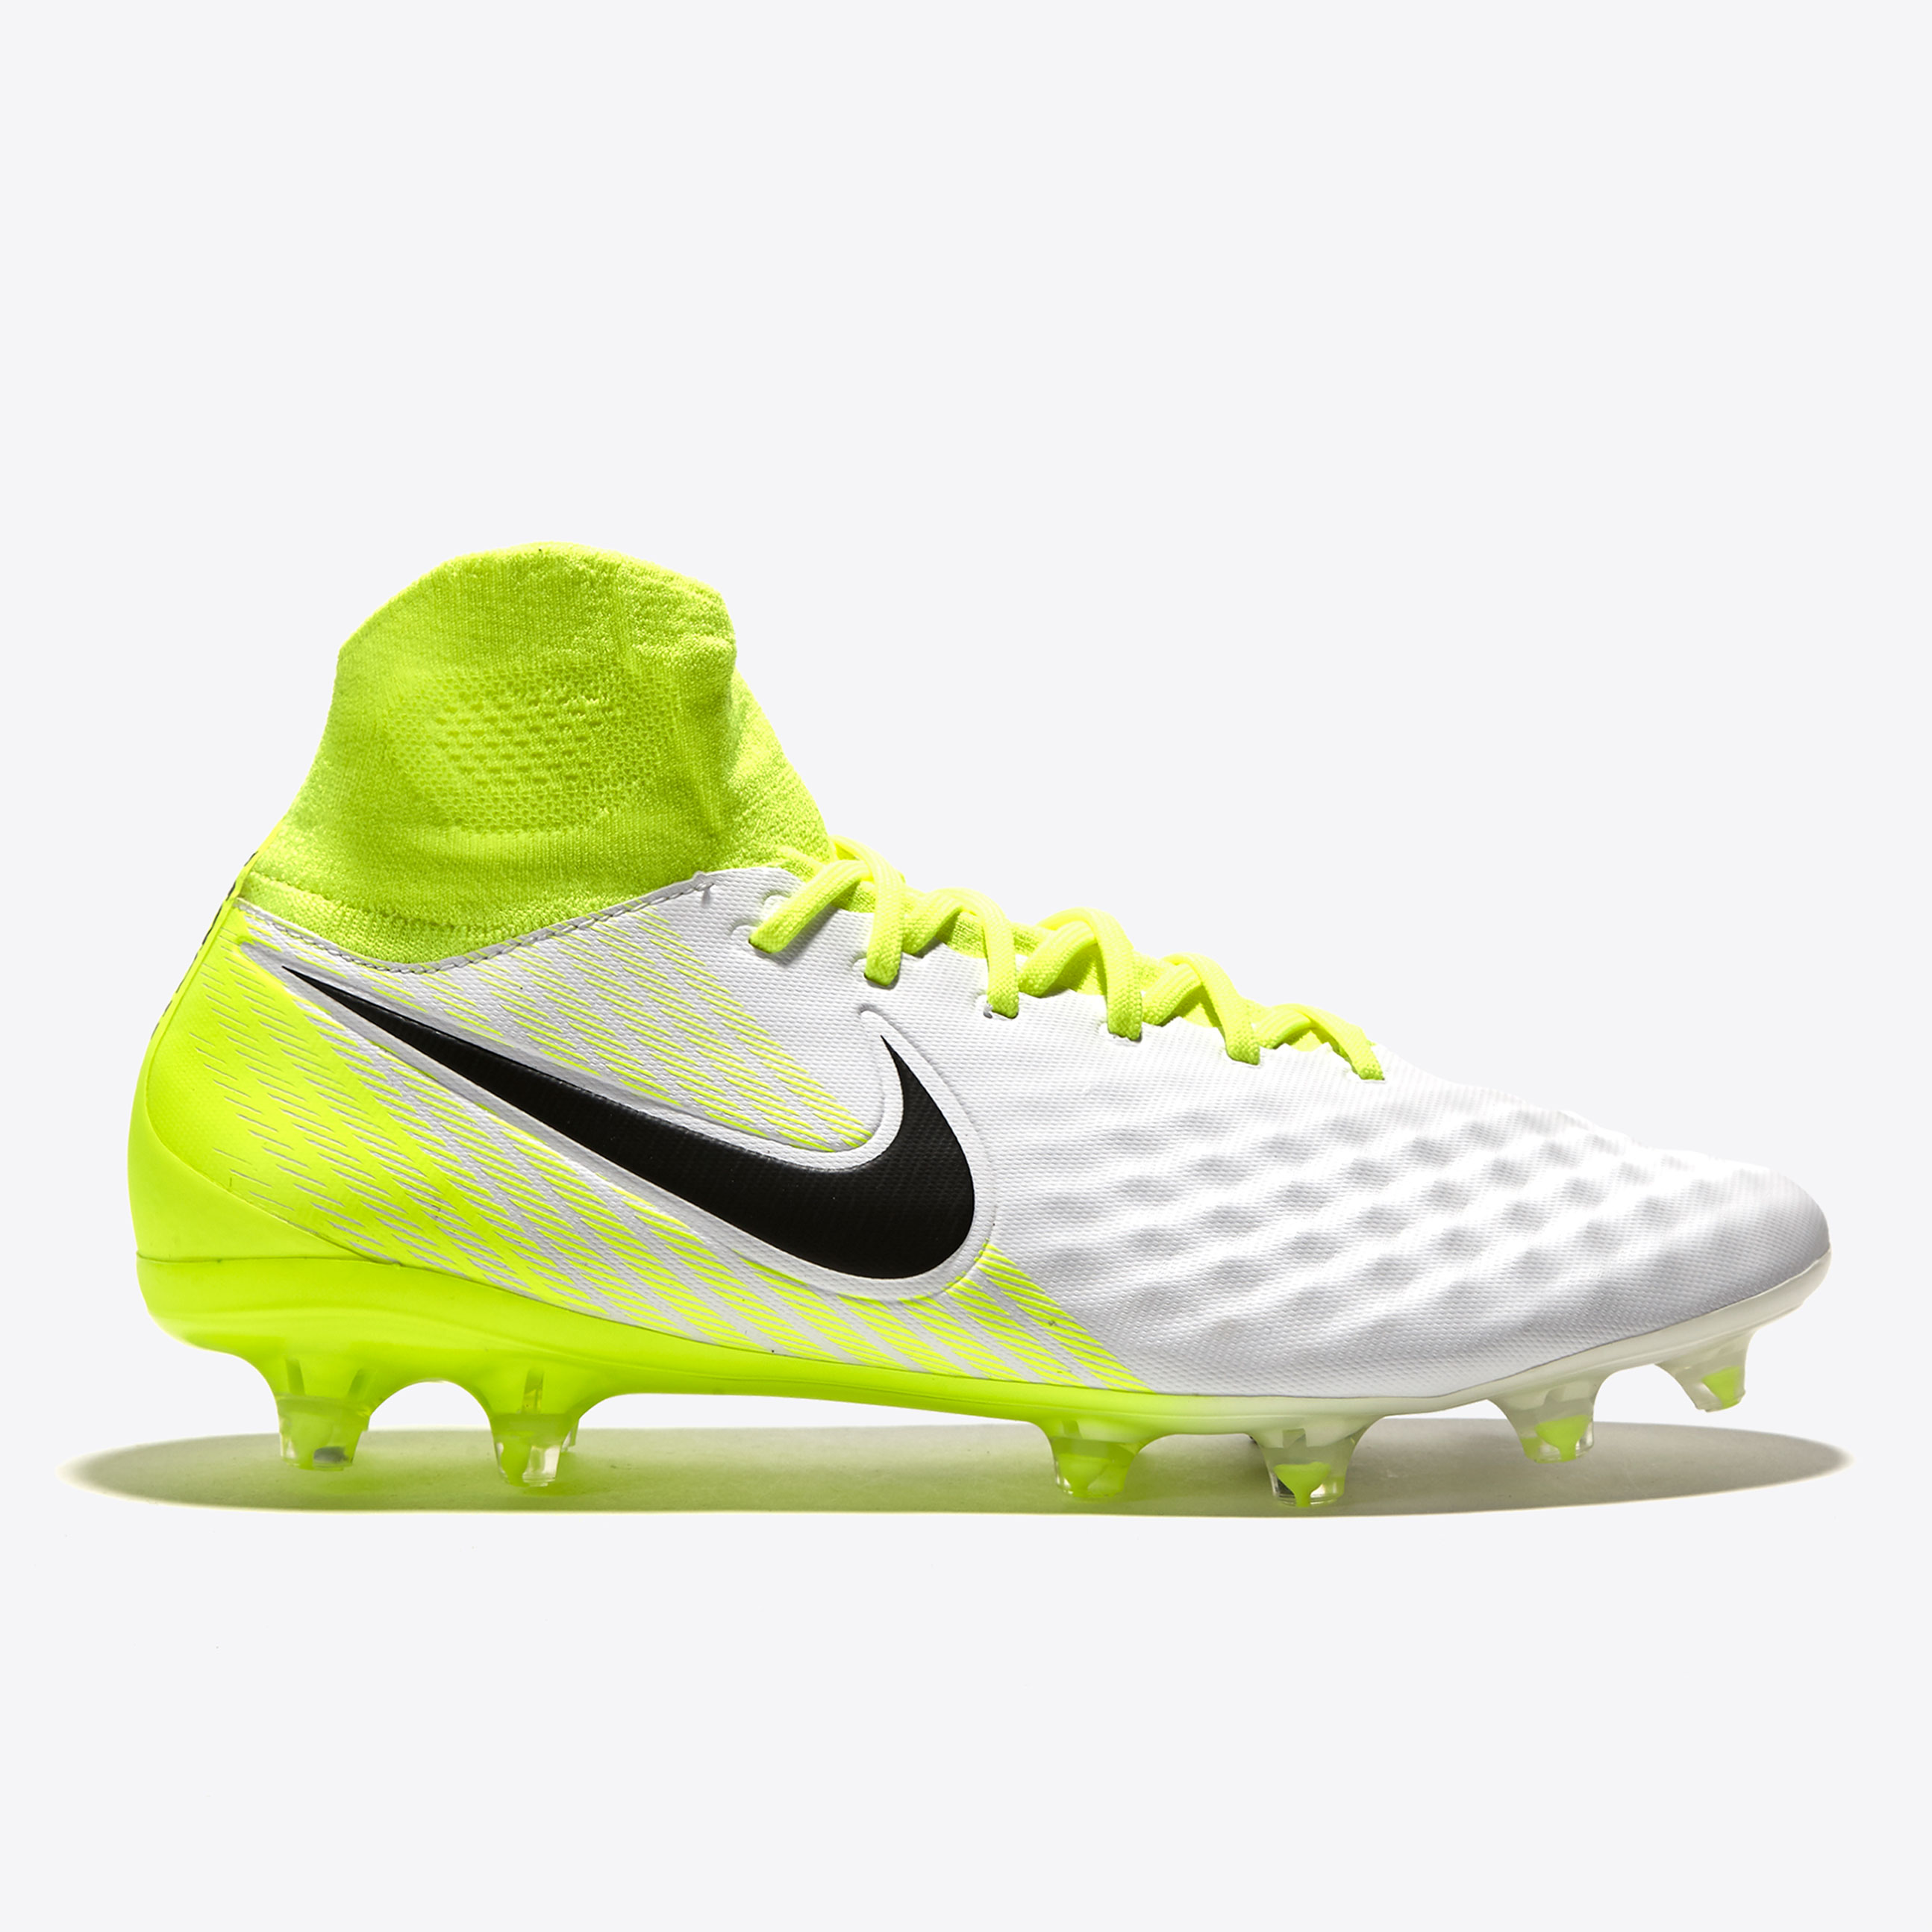 Nike Magista Orden II Firm Ground Football Boots - White/Black/Volt/Pu